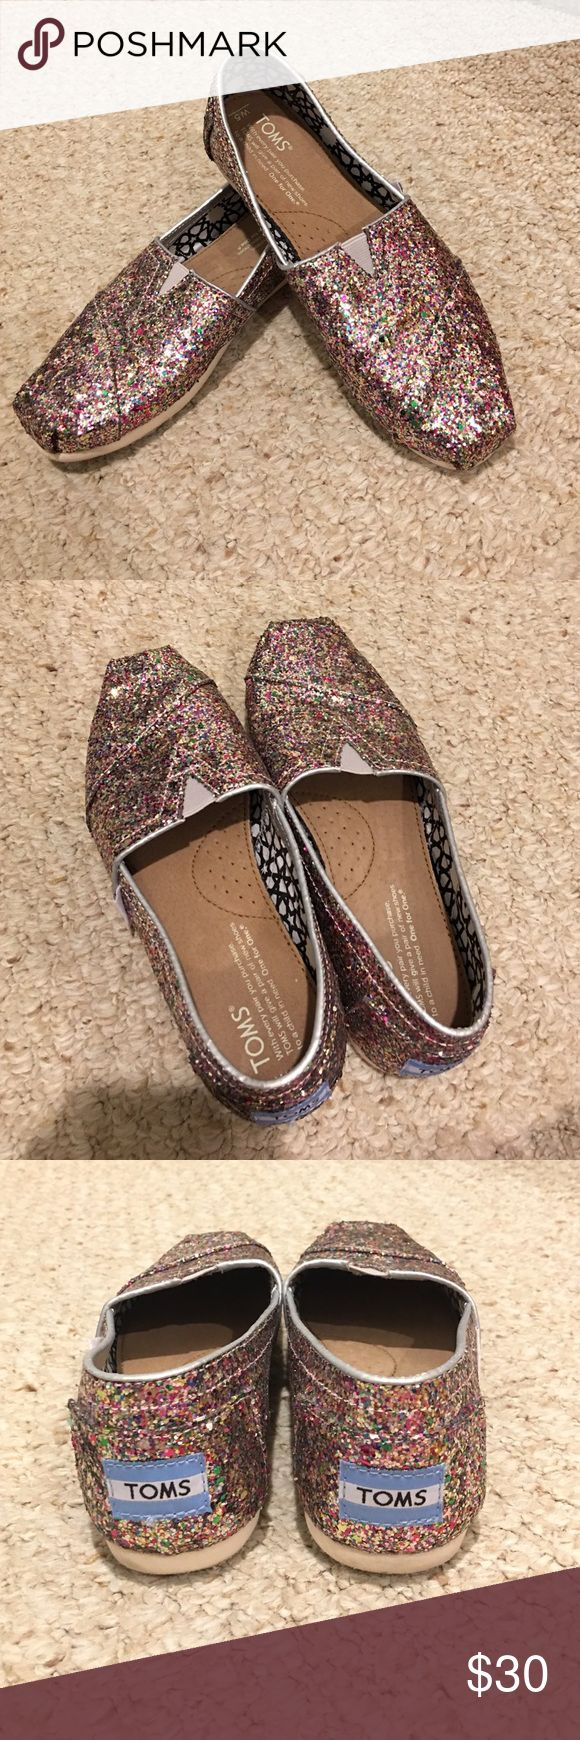 ✂️💲PRICE CUT✂️ Rainbow glitter TOMS loafers Rainbow glitter TOMs, lightly worn. TOMS Shoes Flats & Loafers